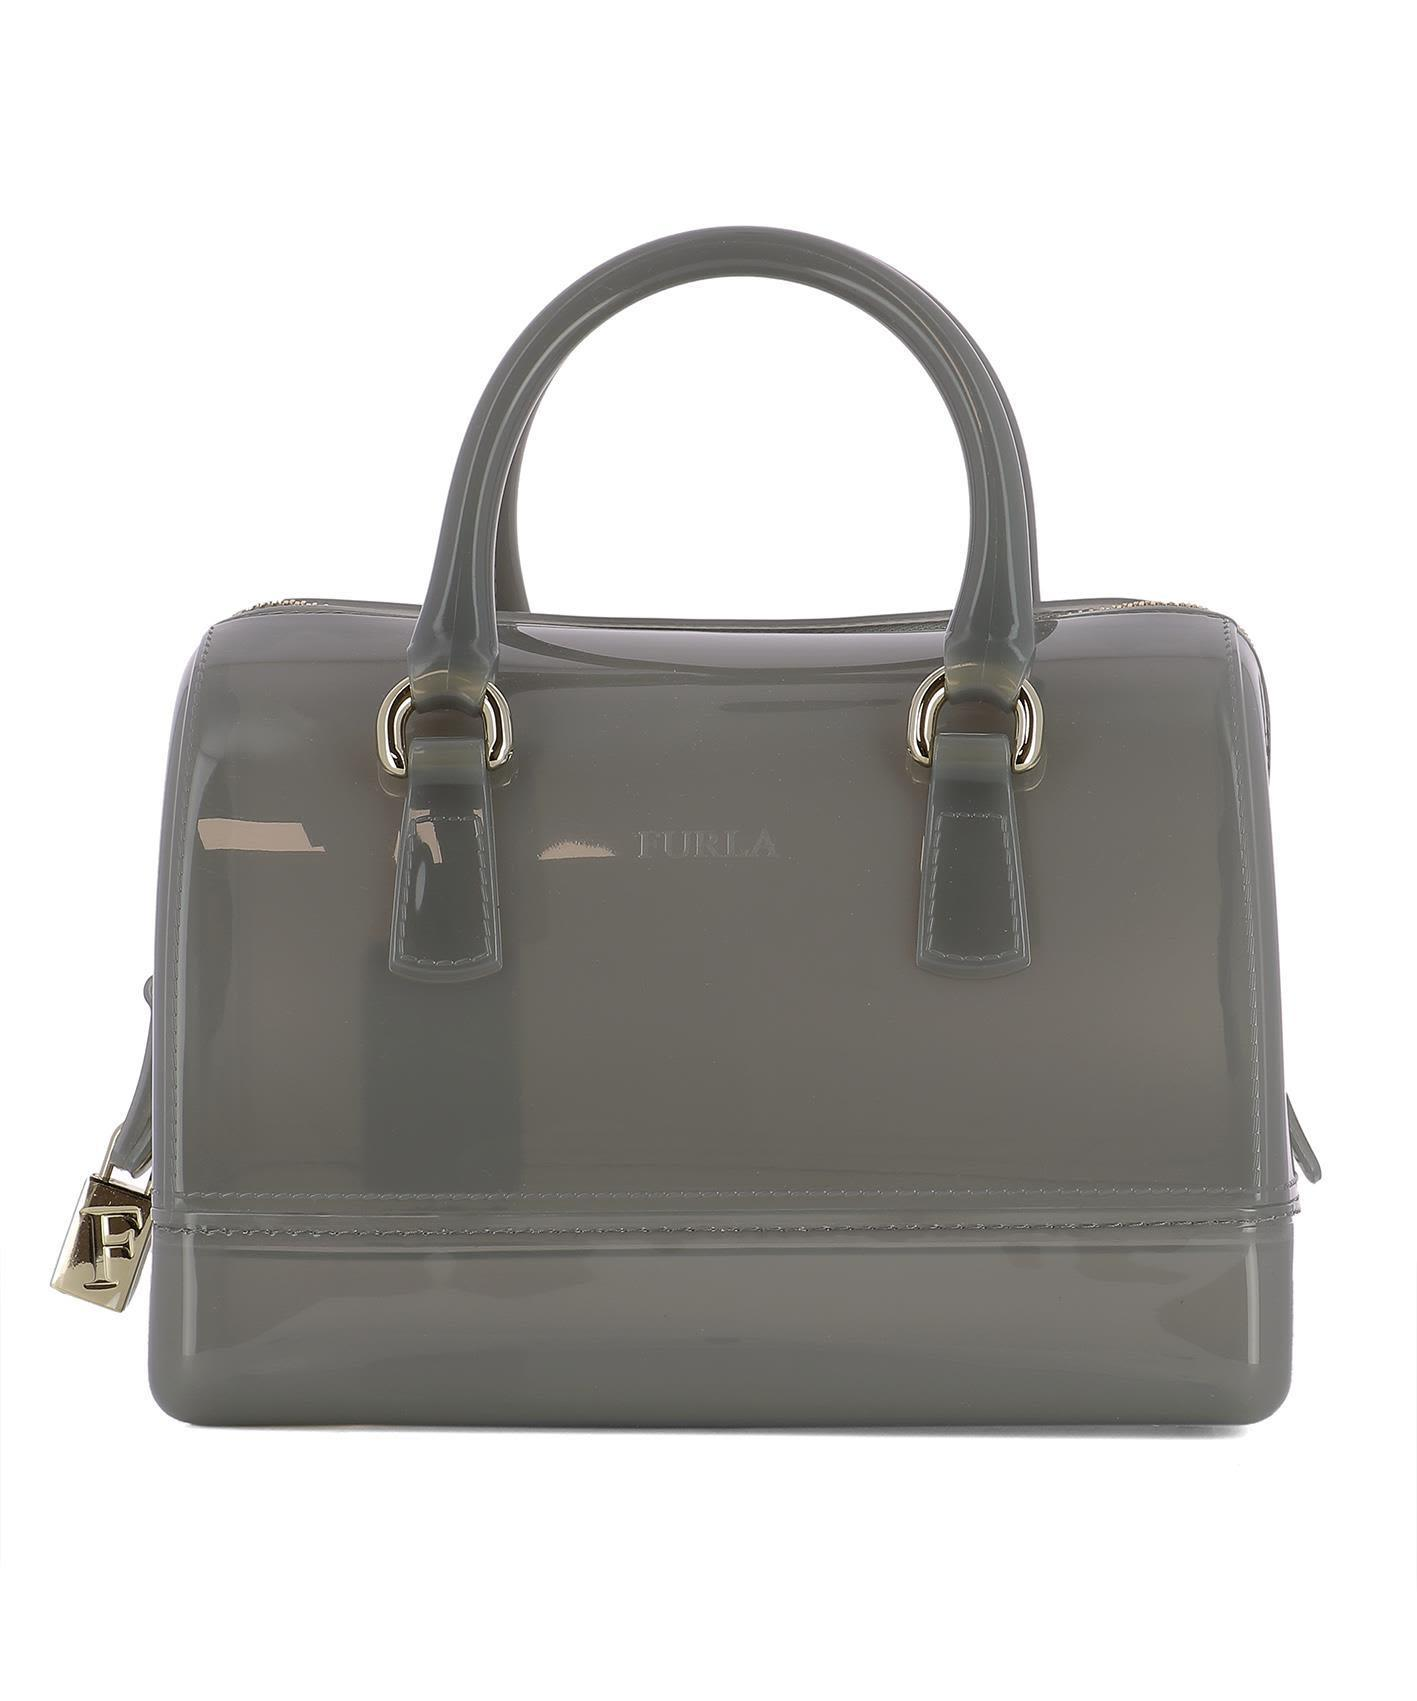 送料込 Grey Pvc Handle Bag バッグ